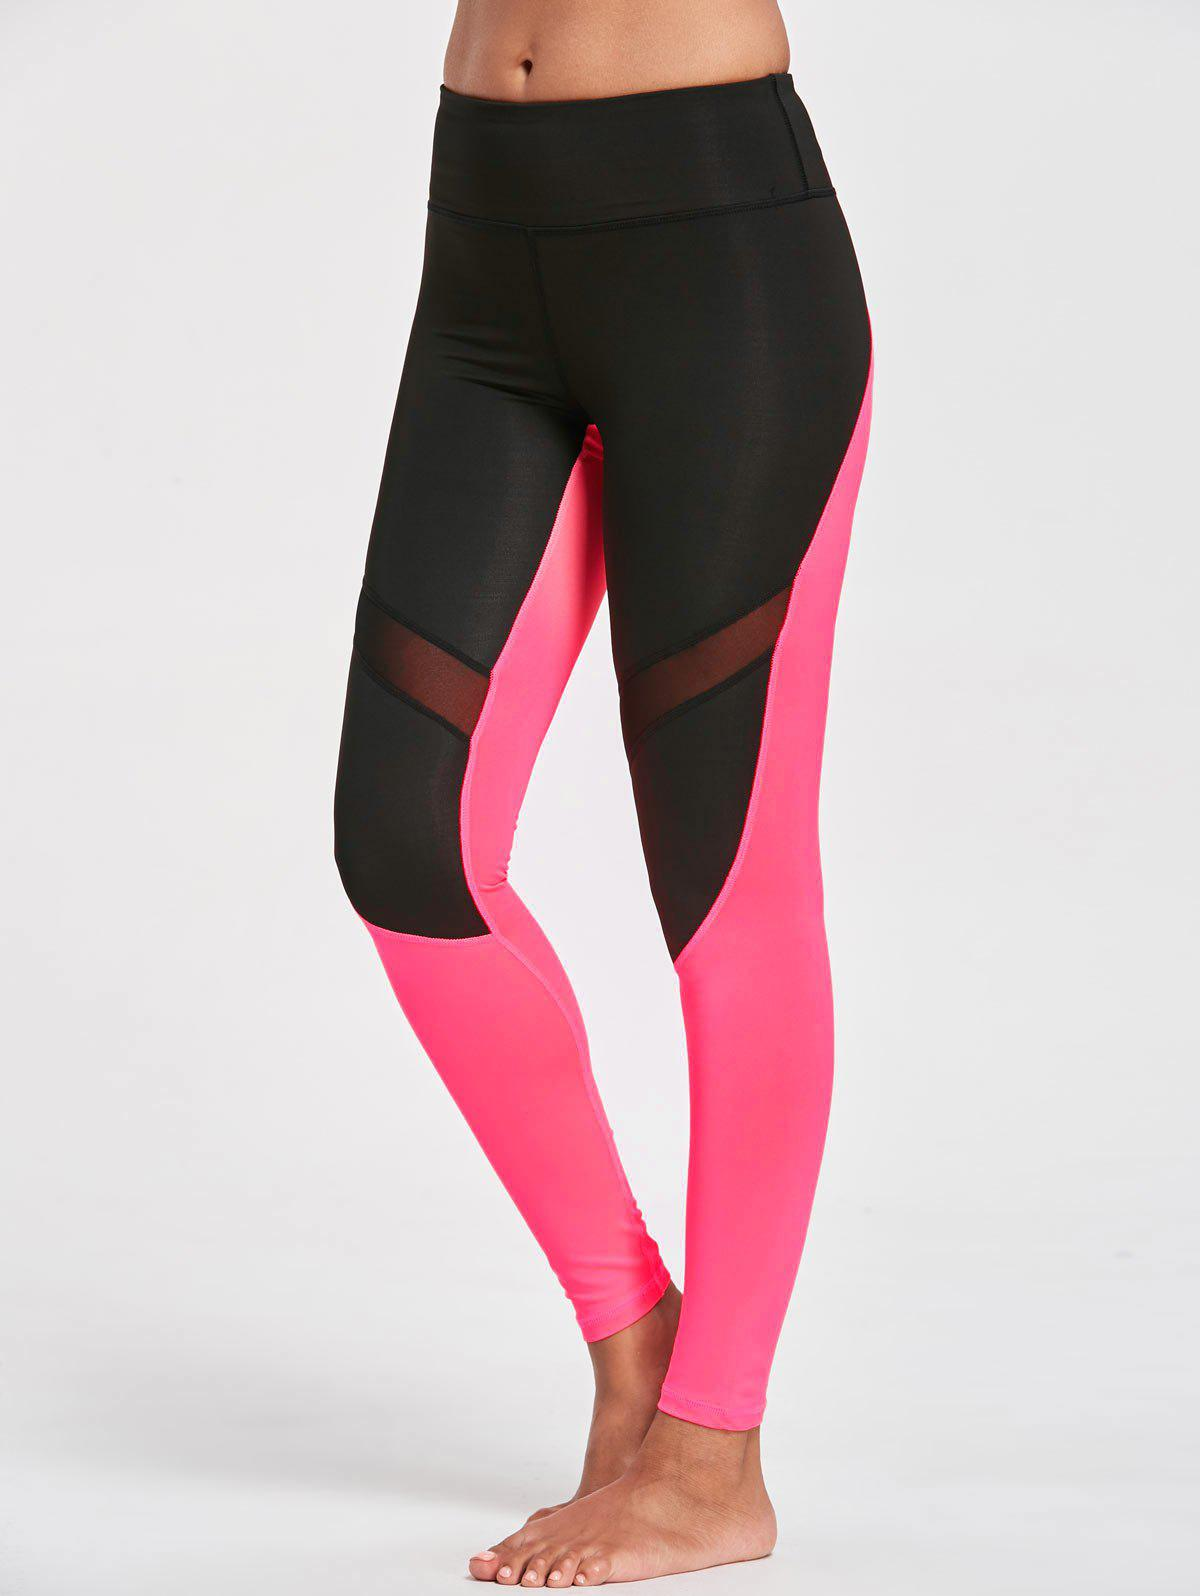 Leggings de yoga en maille de blocs de couleurs - Noir et Rose Rouge L